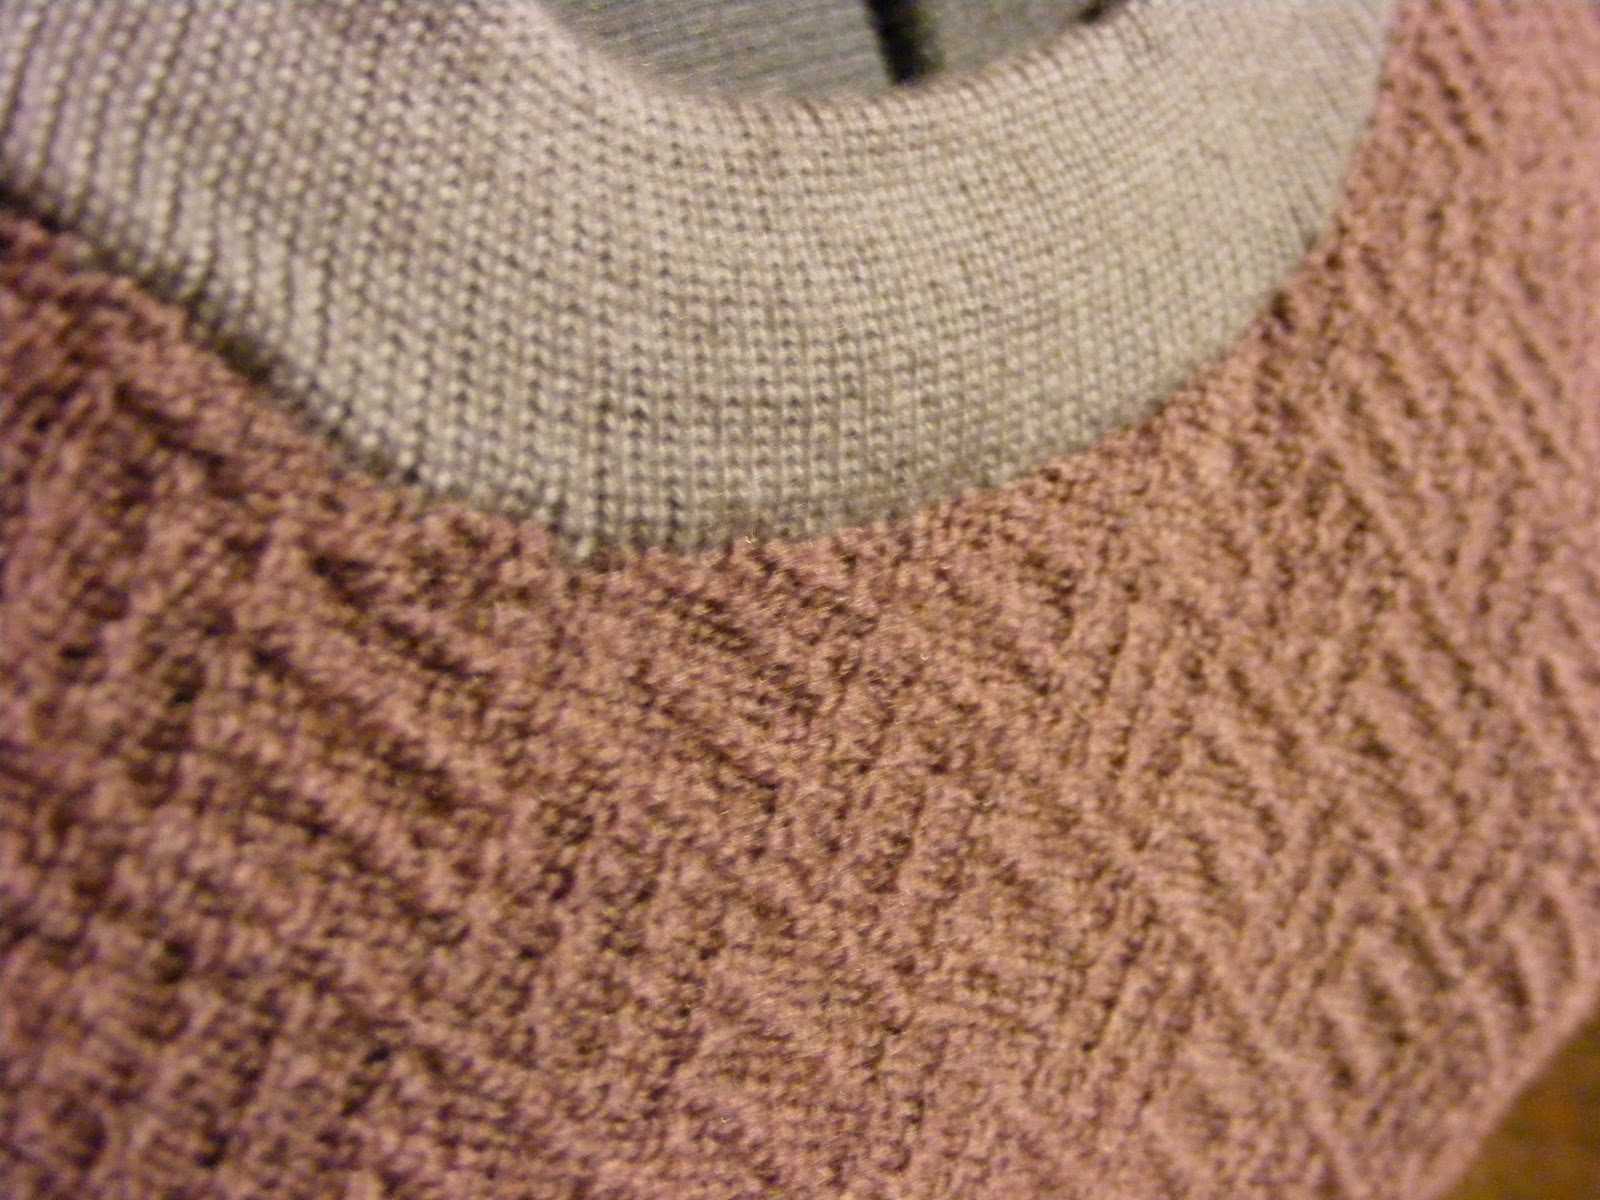 Atelier Ningyo (doll workshop): First machine knit sweaters completed